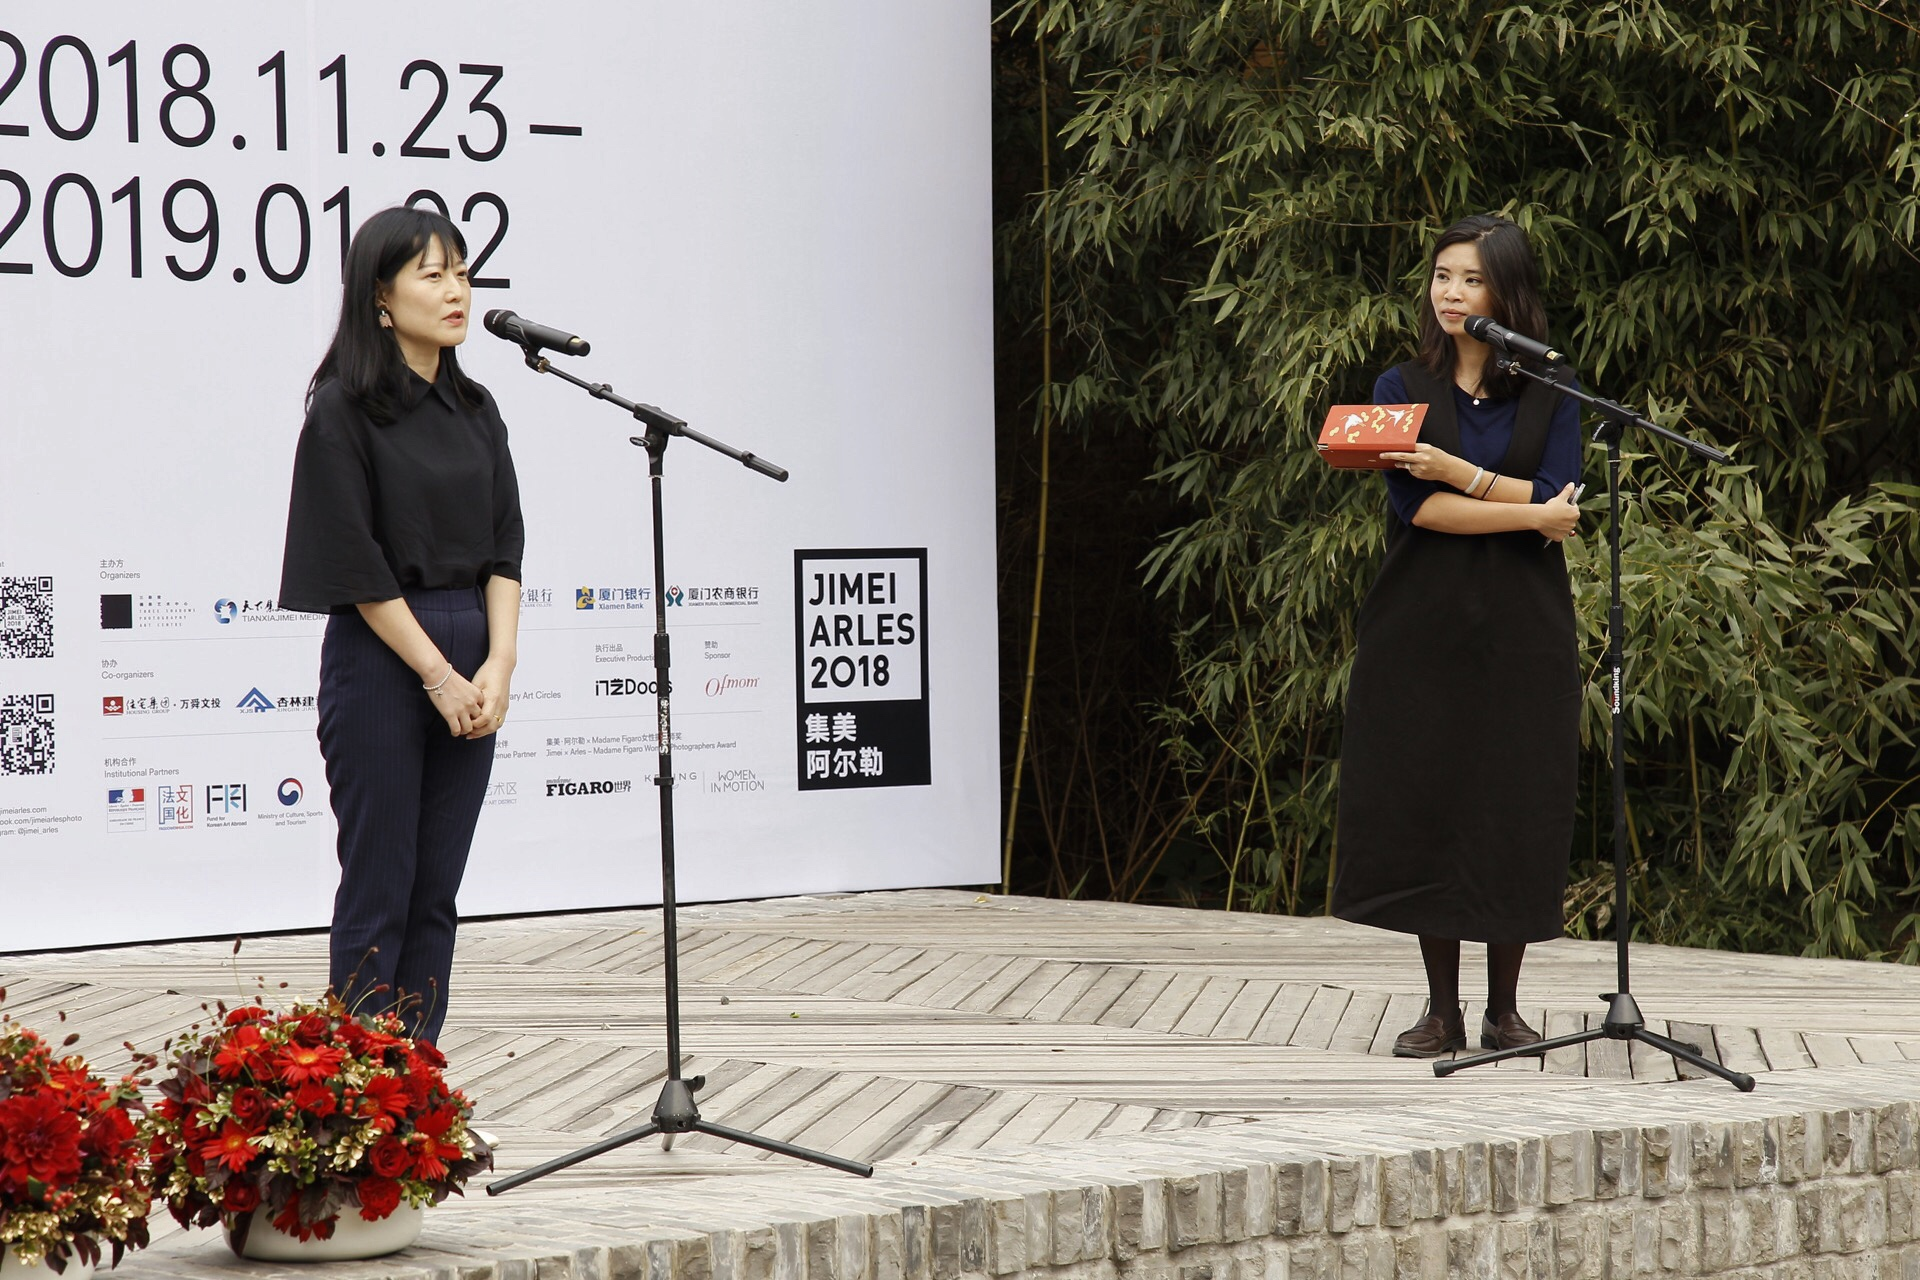 Guo Yingguang   Artist, Winner of the 1st Jimei x Arles – Madame Figaro Women Photographers Award in 2017